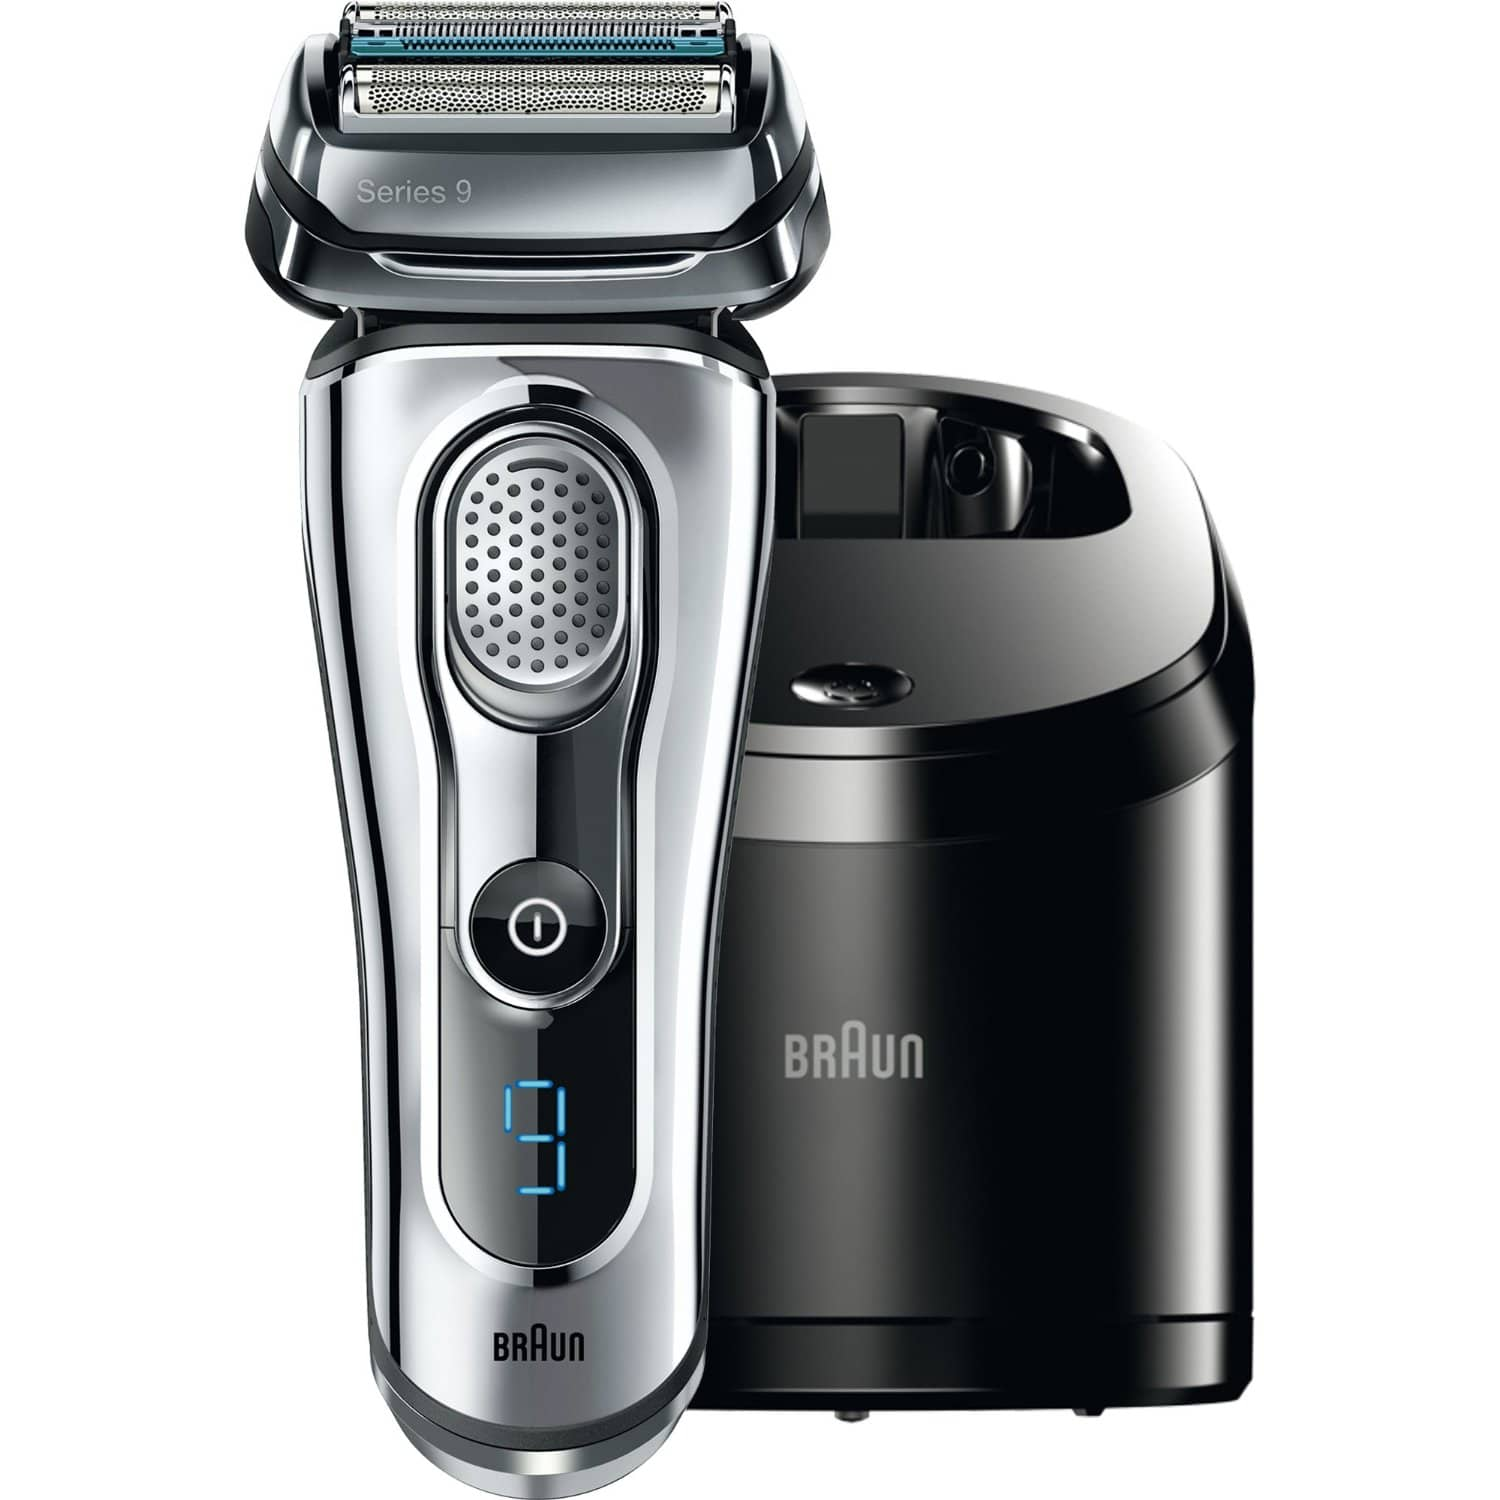 Braun Series 9 9090cc Electric Shaver w/ Cleaning Center  $205 or less + Free Shipping